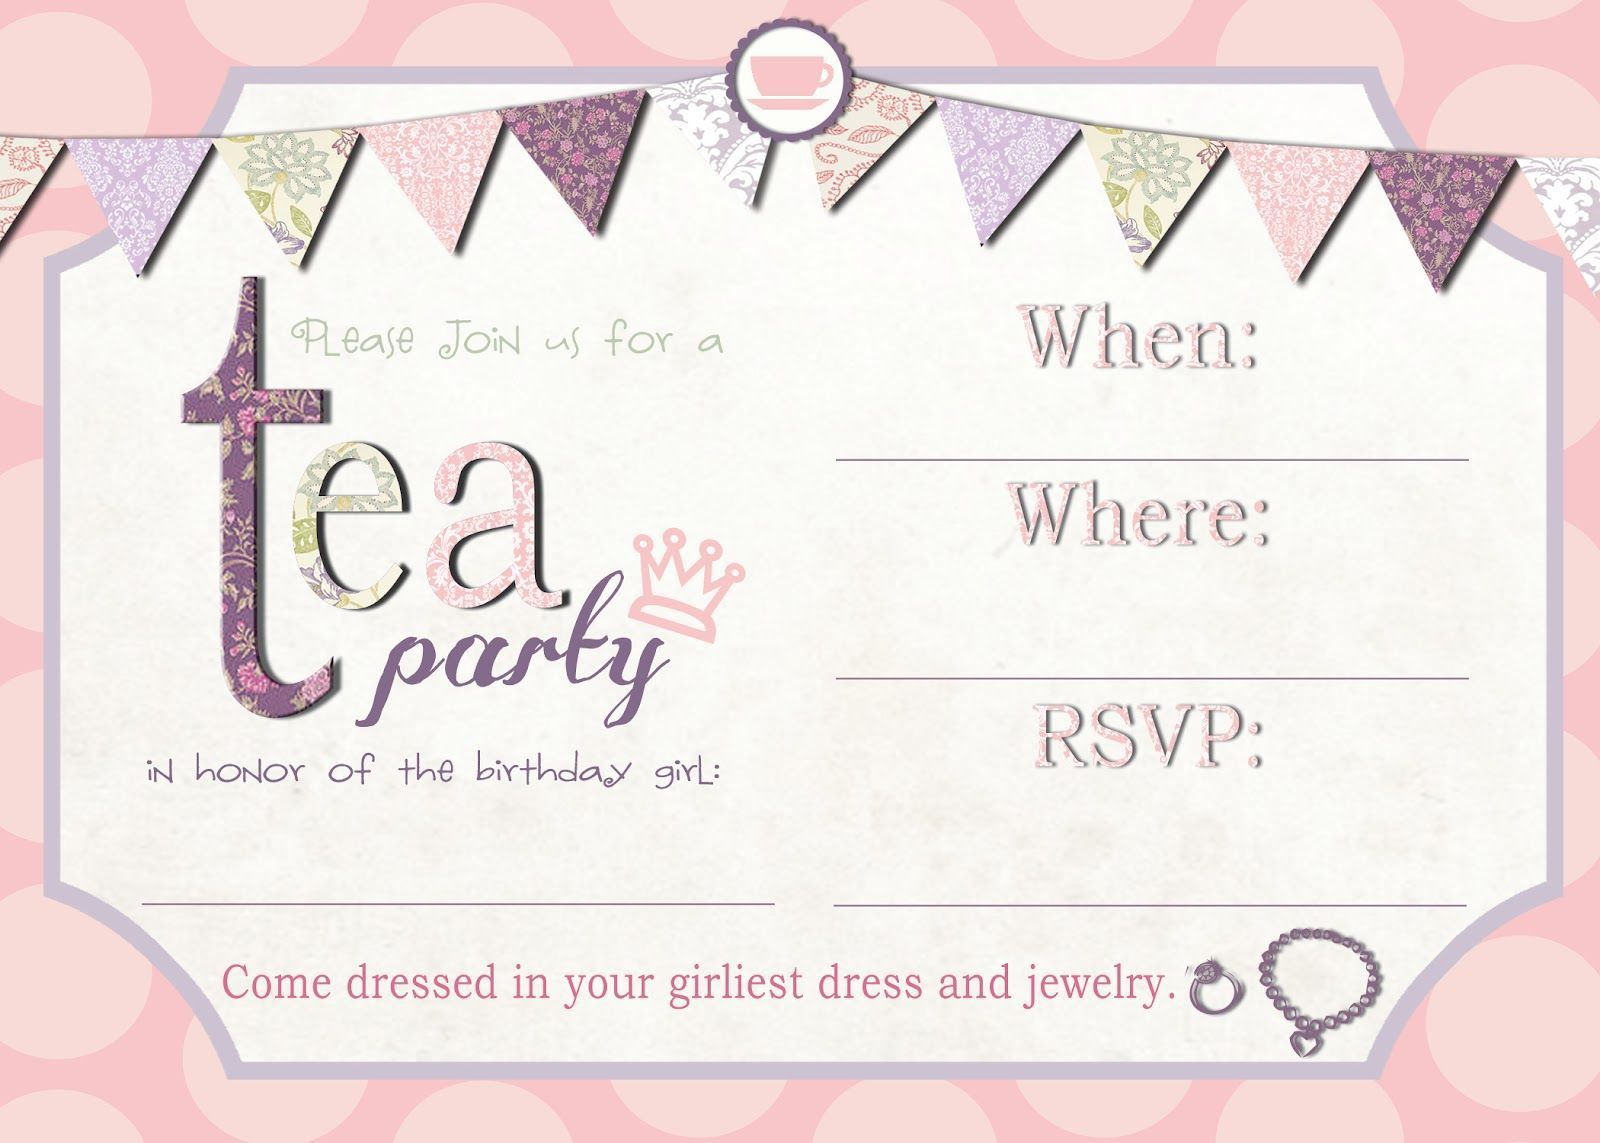 001 Awful Tea Party Invitation Template High Definition  Wording Vintage Free SampleFull